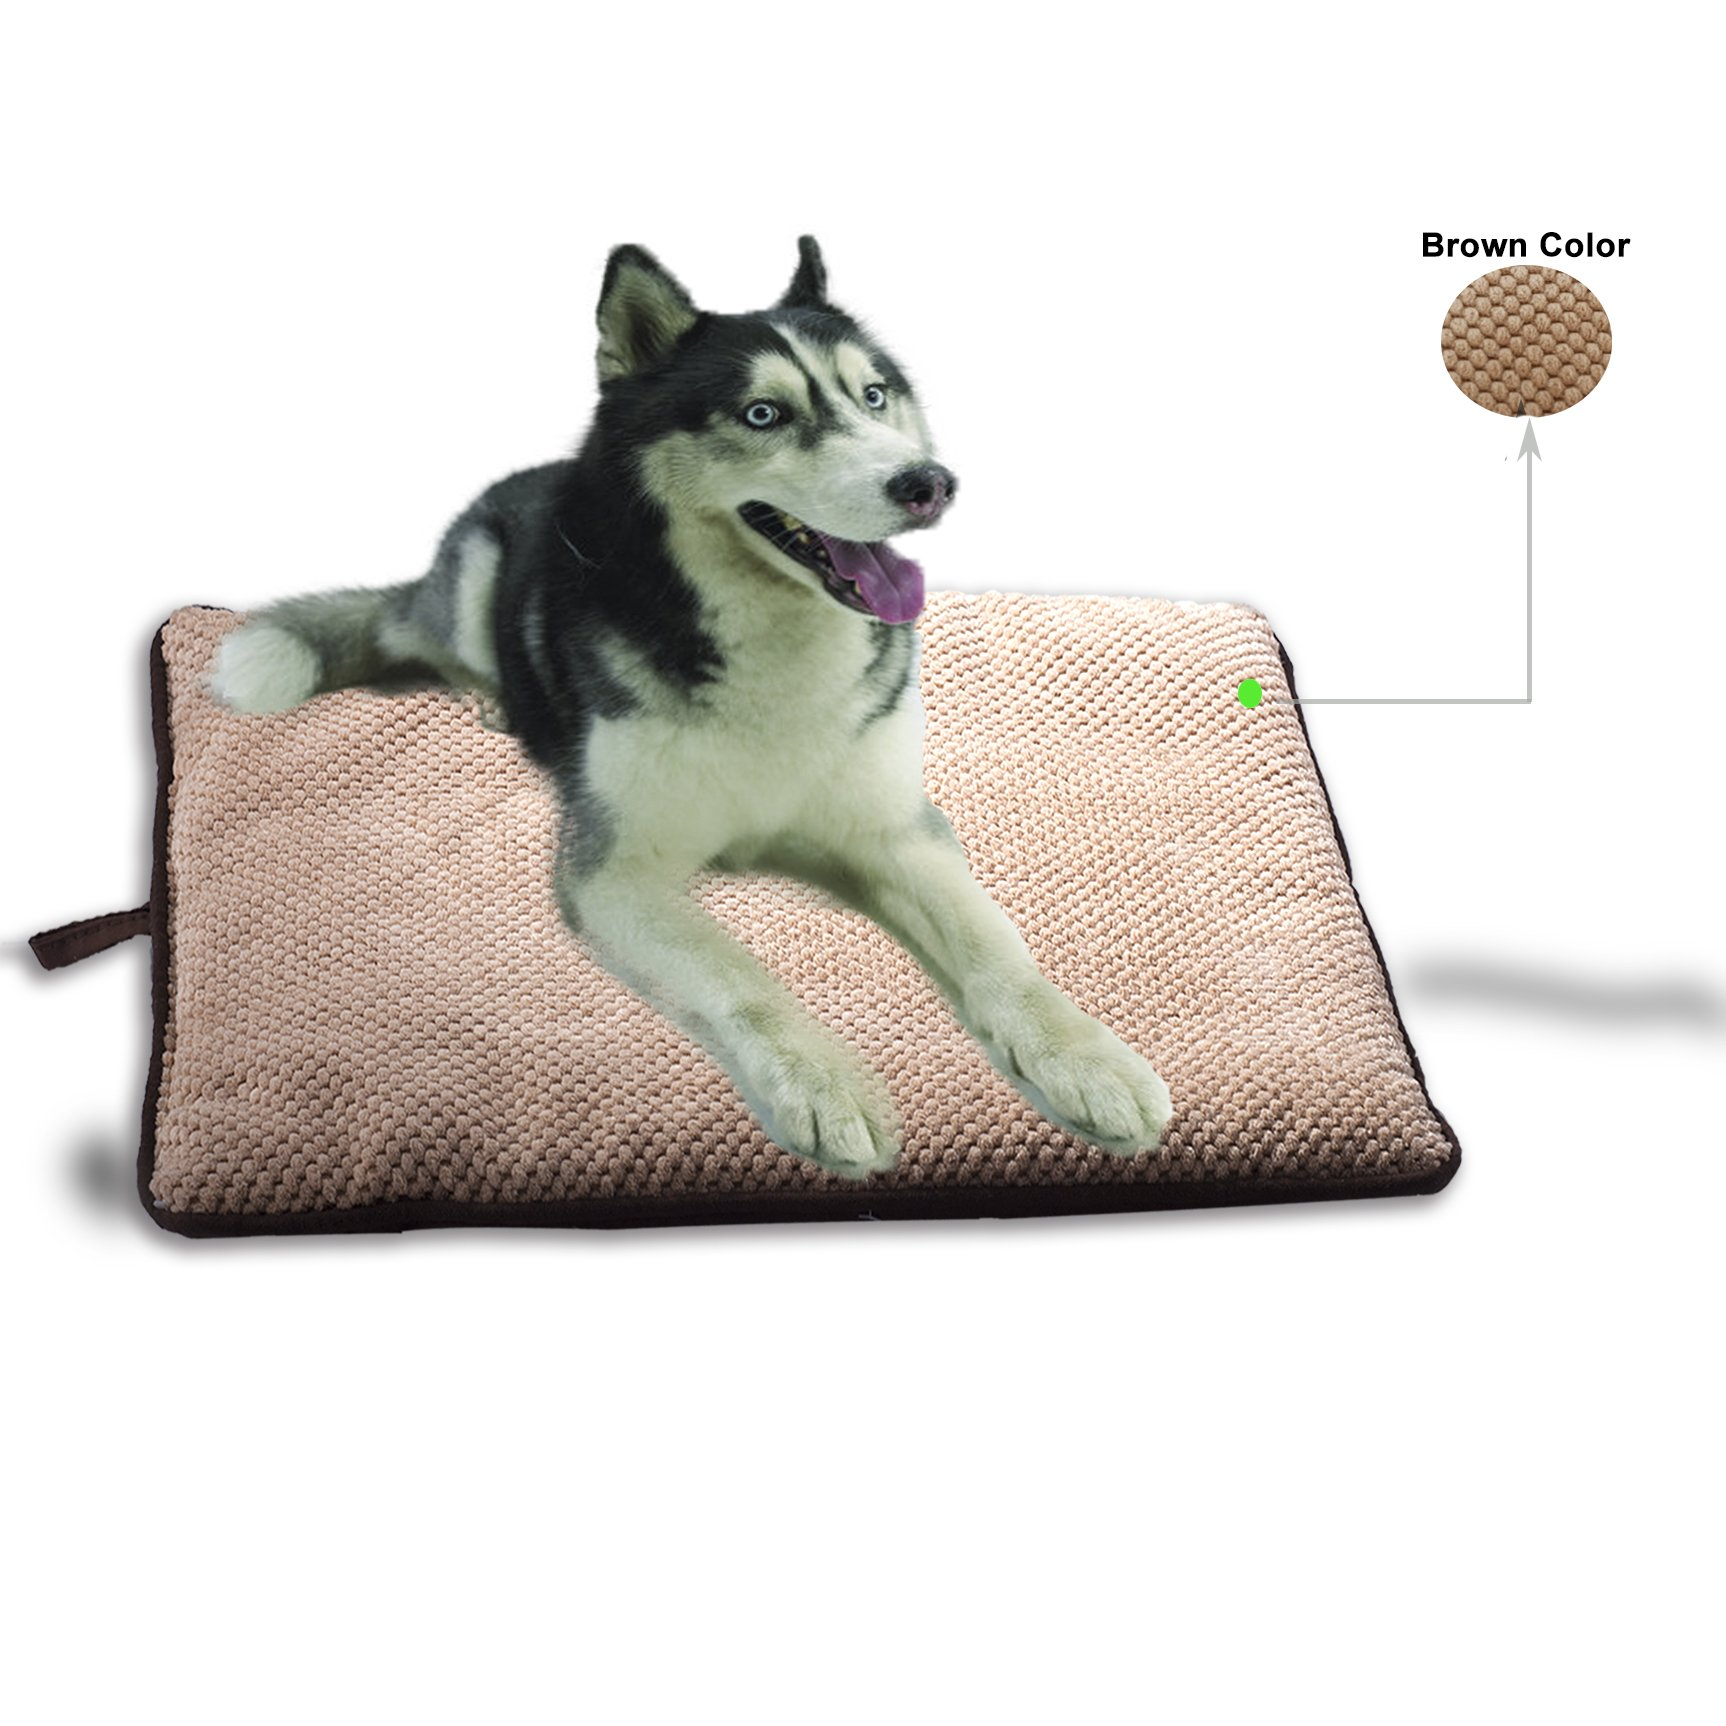 PAWISE Dog Bed Cat Bed Dog Mat Cushion Waterproof for Crate Outdoor Car Mat Machine Wash (Large-New) by PAWISE